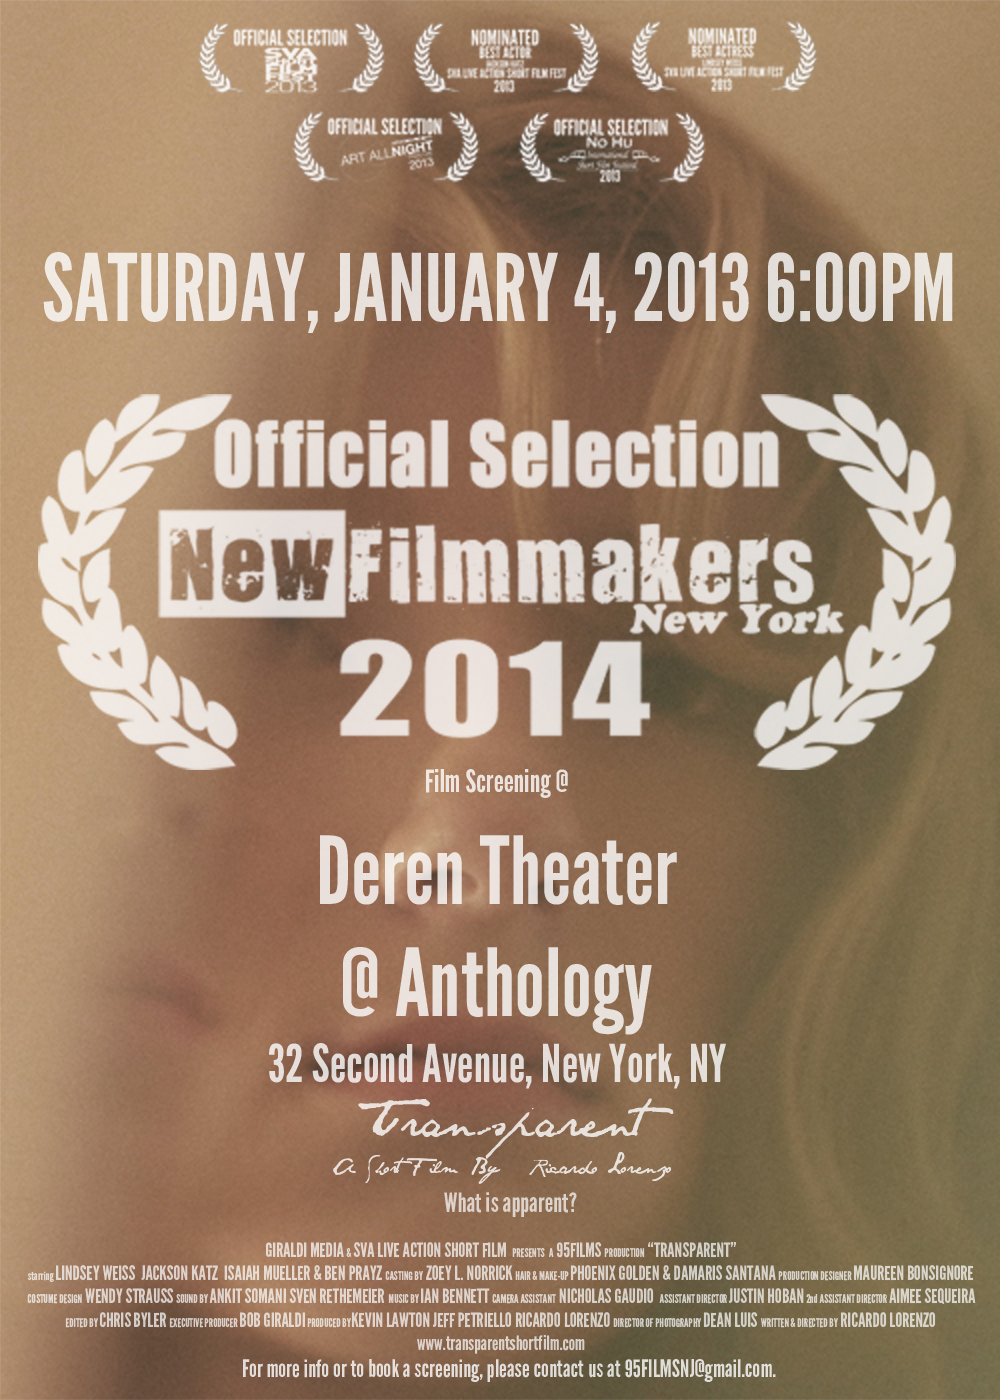 Transparent is an Official Selection of NewFilmmakers New York